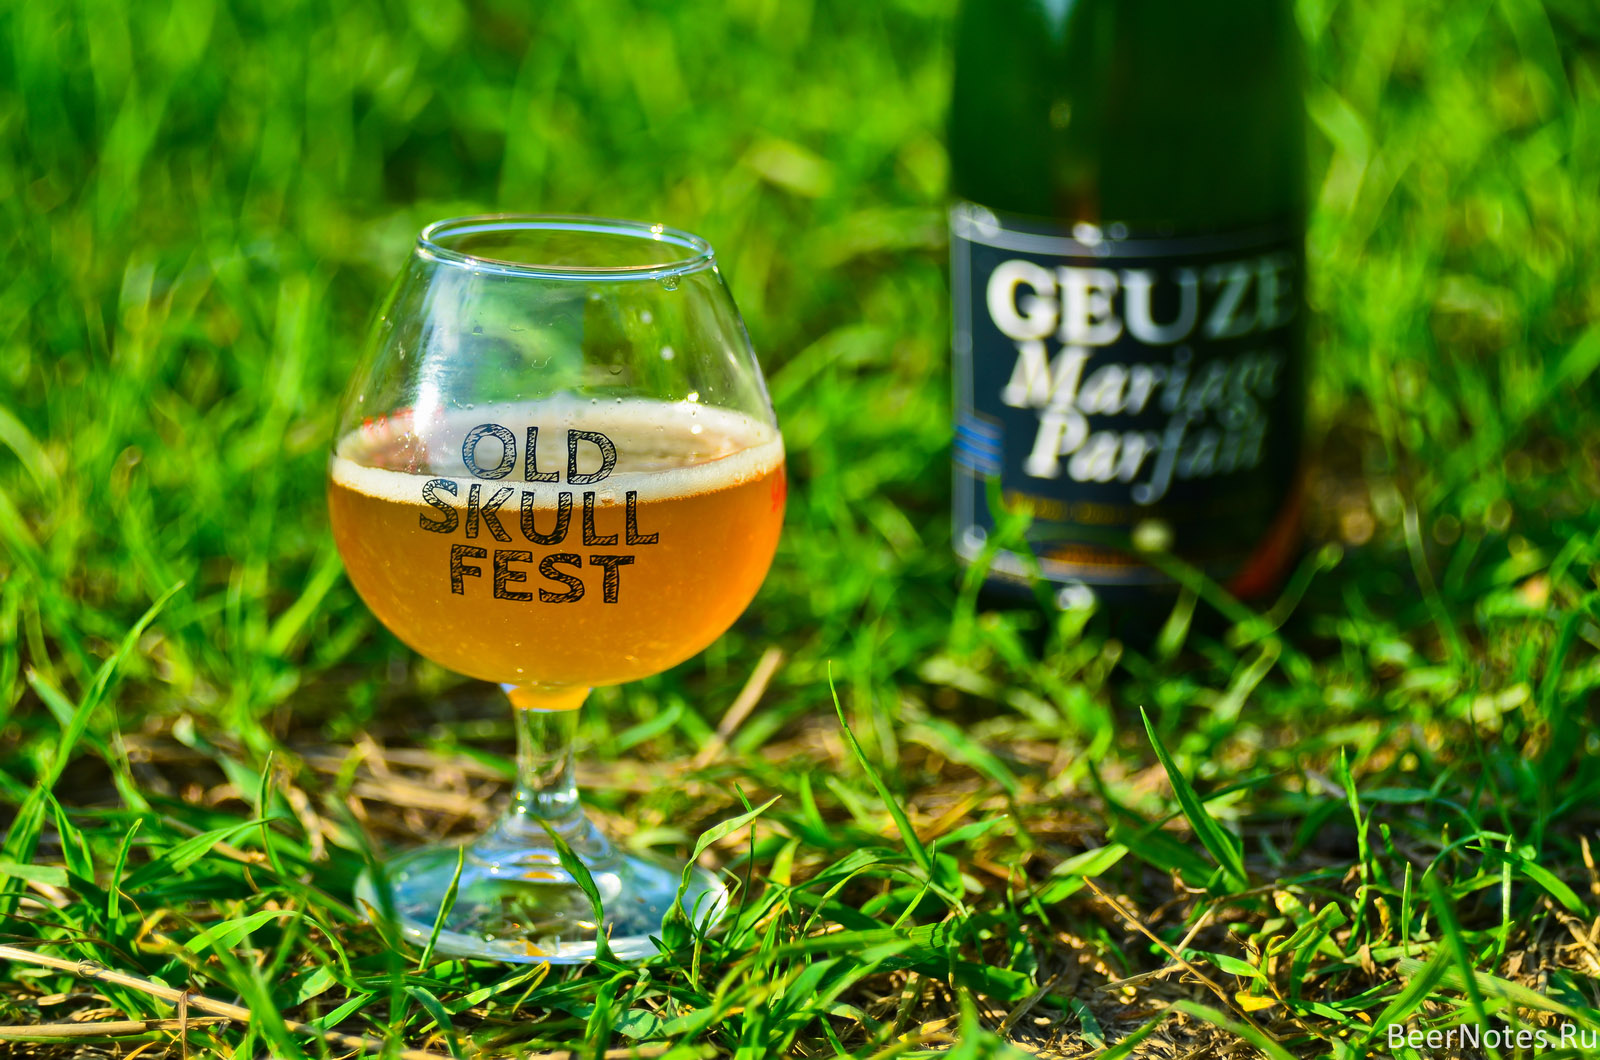 boon-oude-geuze-mariage-parfait-2012-1